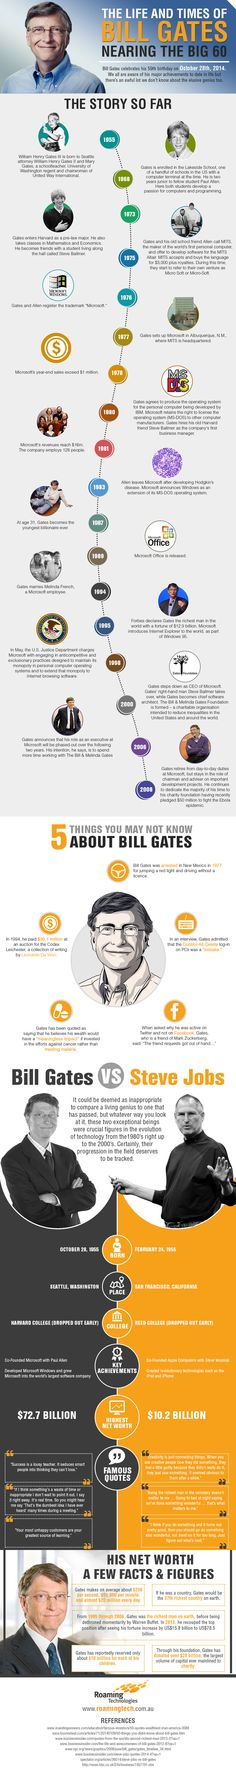 Best 25+ Bill gates ideas on Pinterest Bill gates quotes, Bill - steve jobs resume